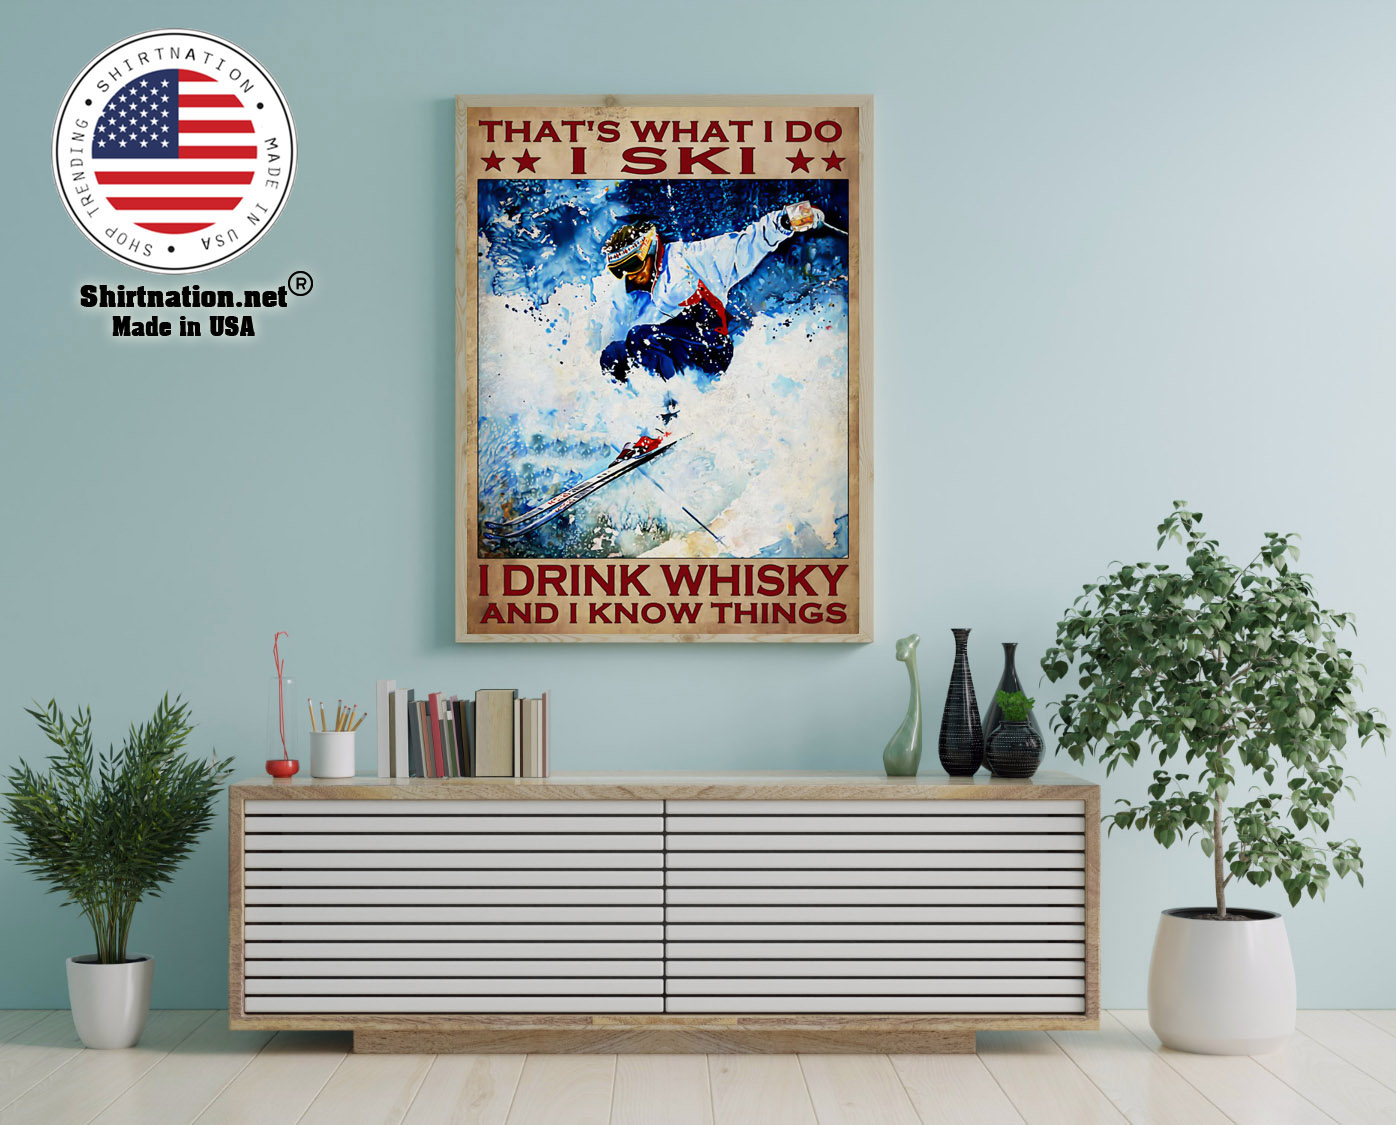 Thats what I do I ski I drink whisky and I know things poster 12